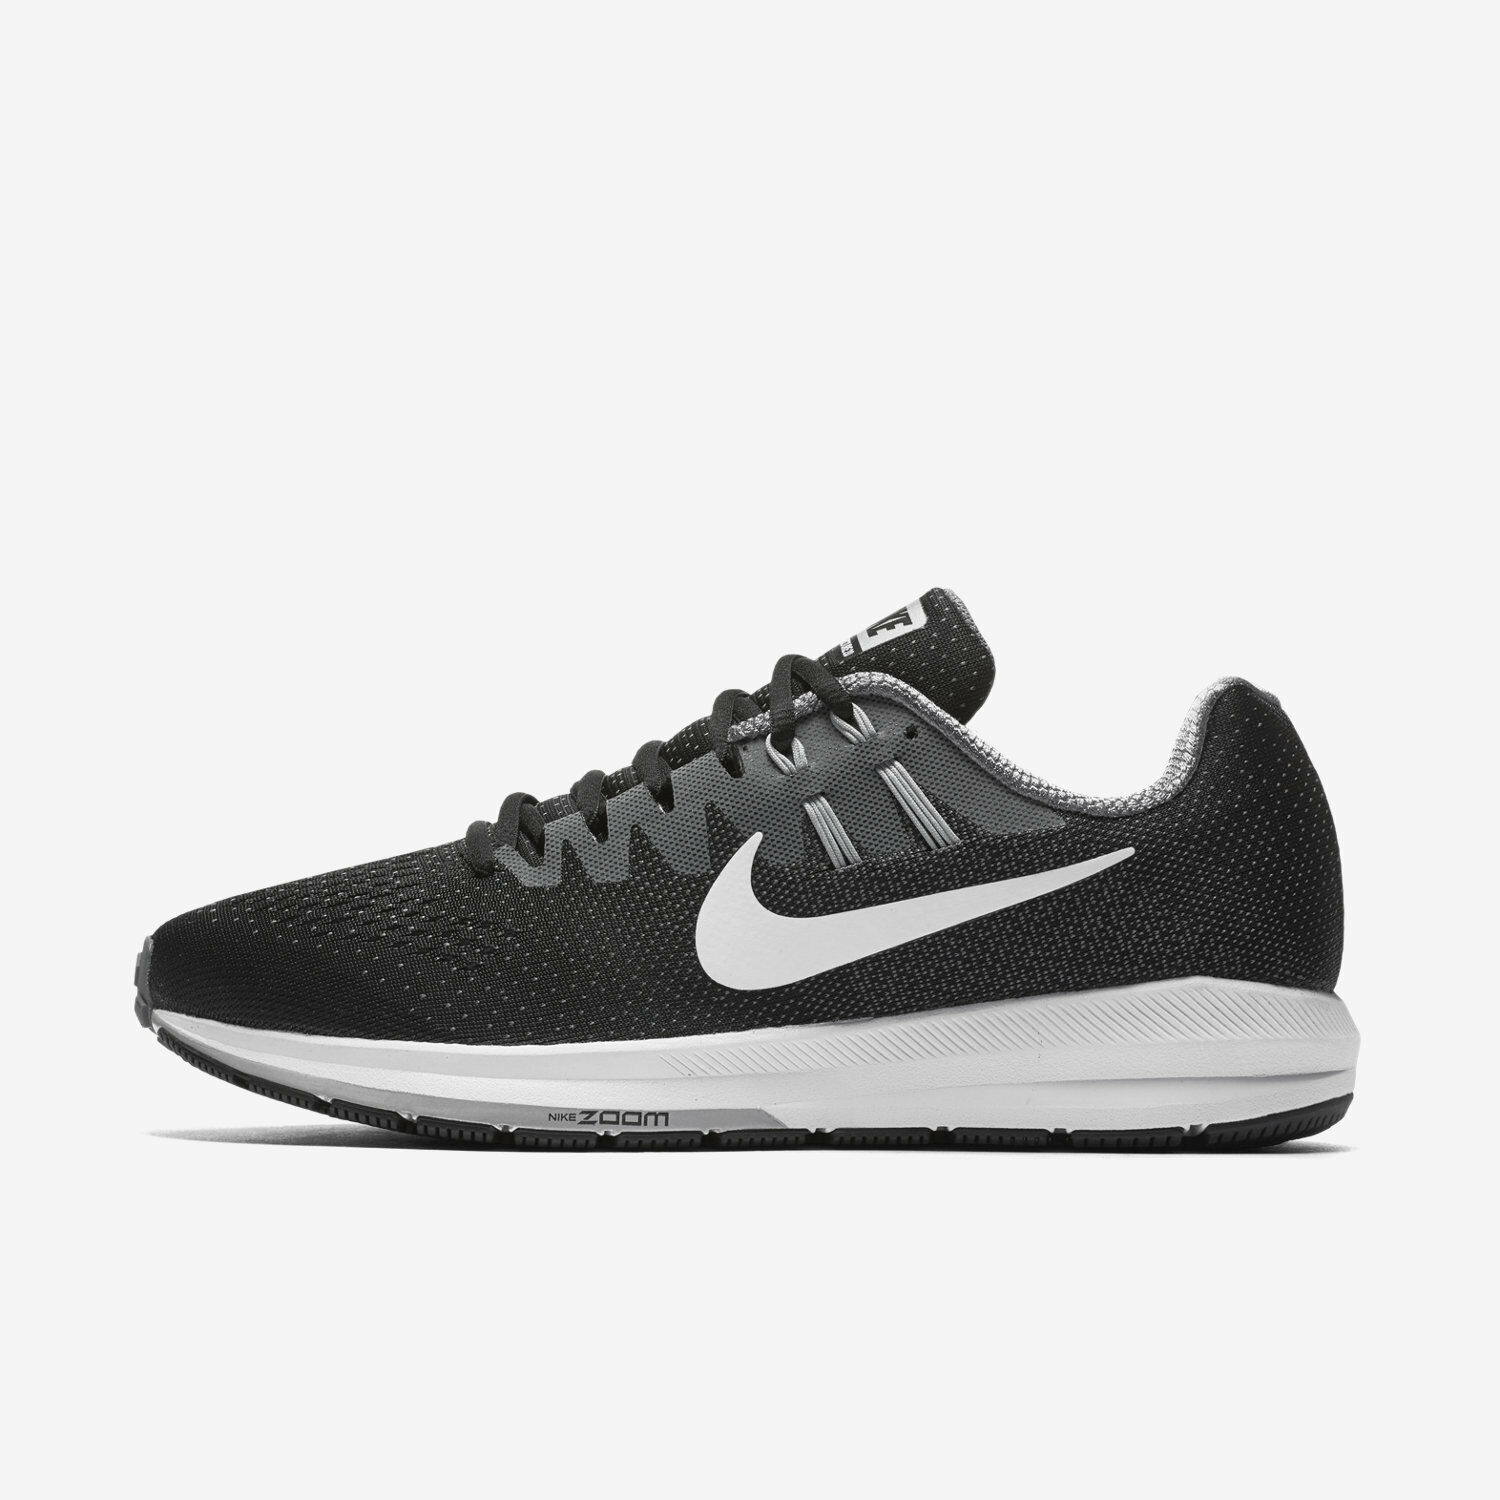 Mens Nike Air Zoom Structure 20 Sz 6.5 Black White Grey 849576-003 FREE SHIPPING